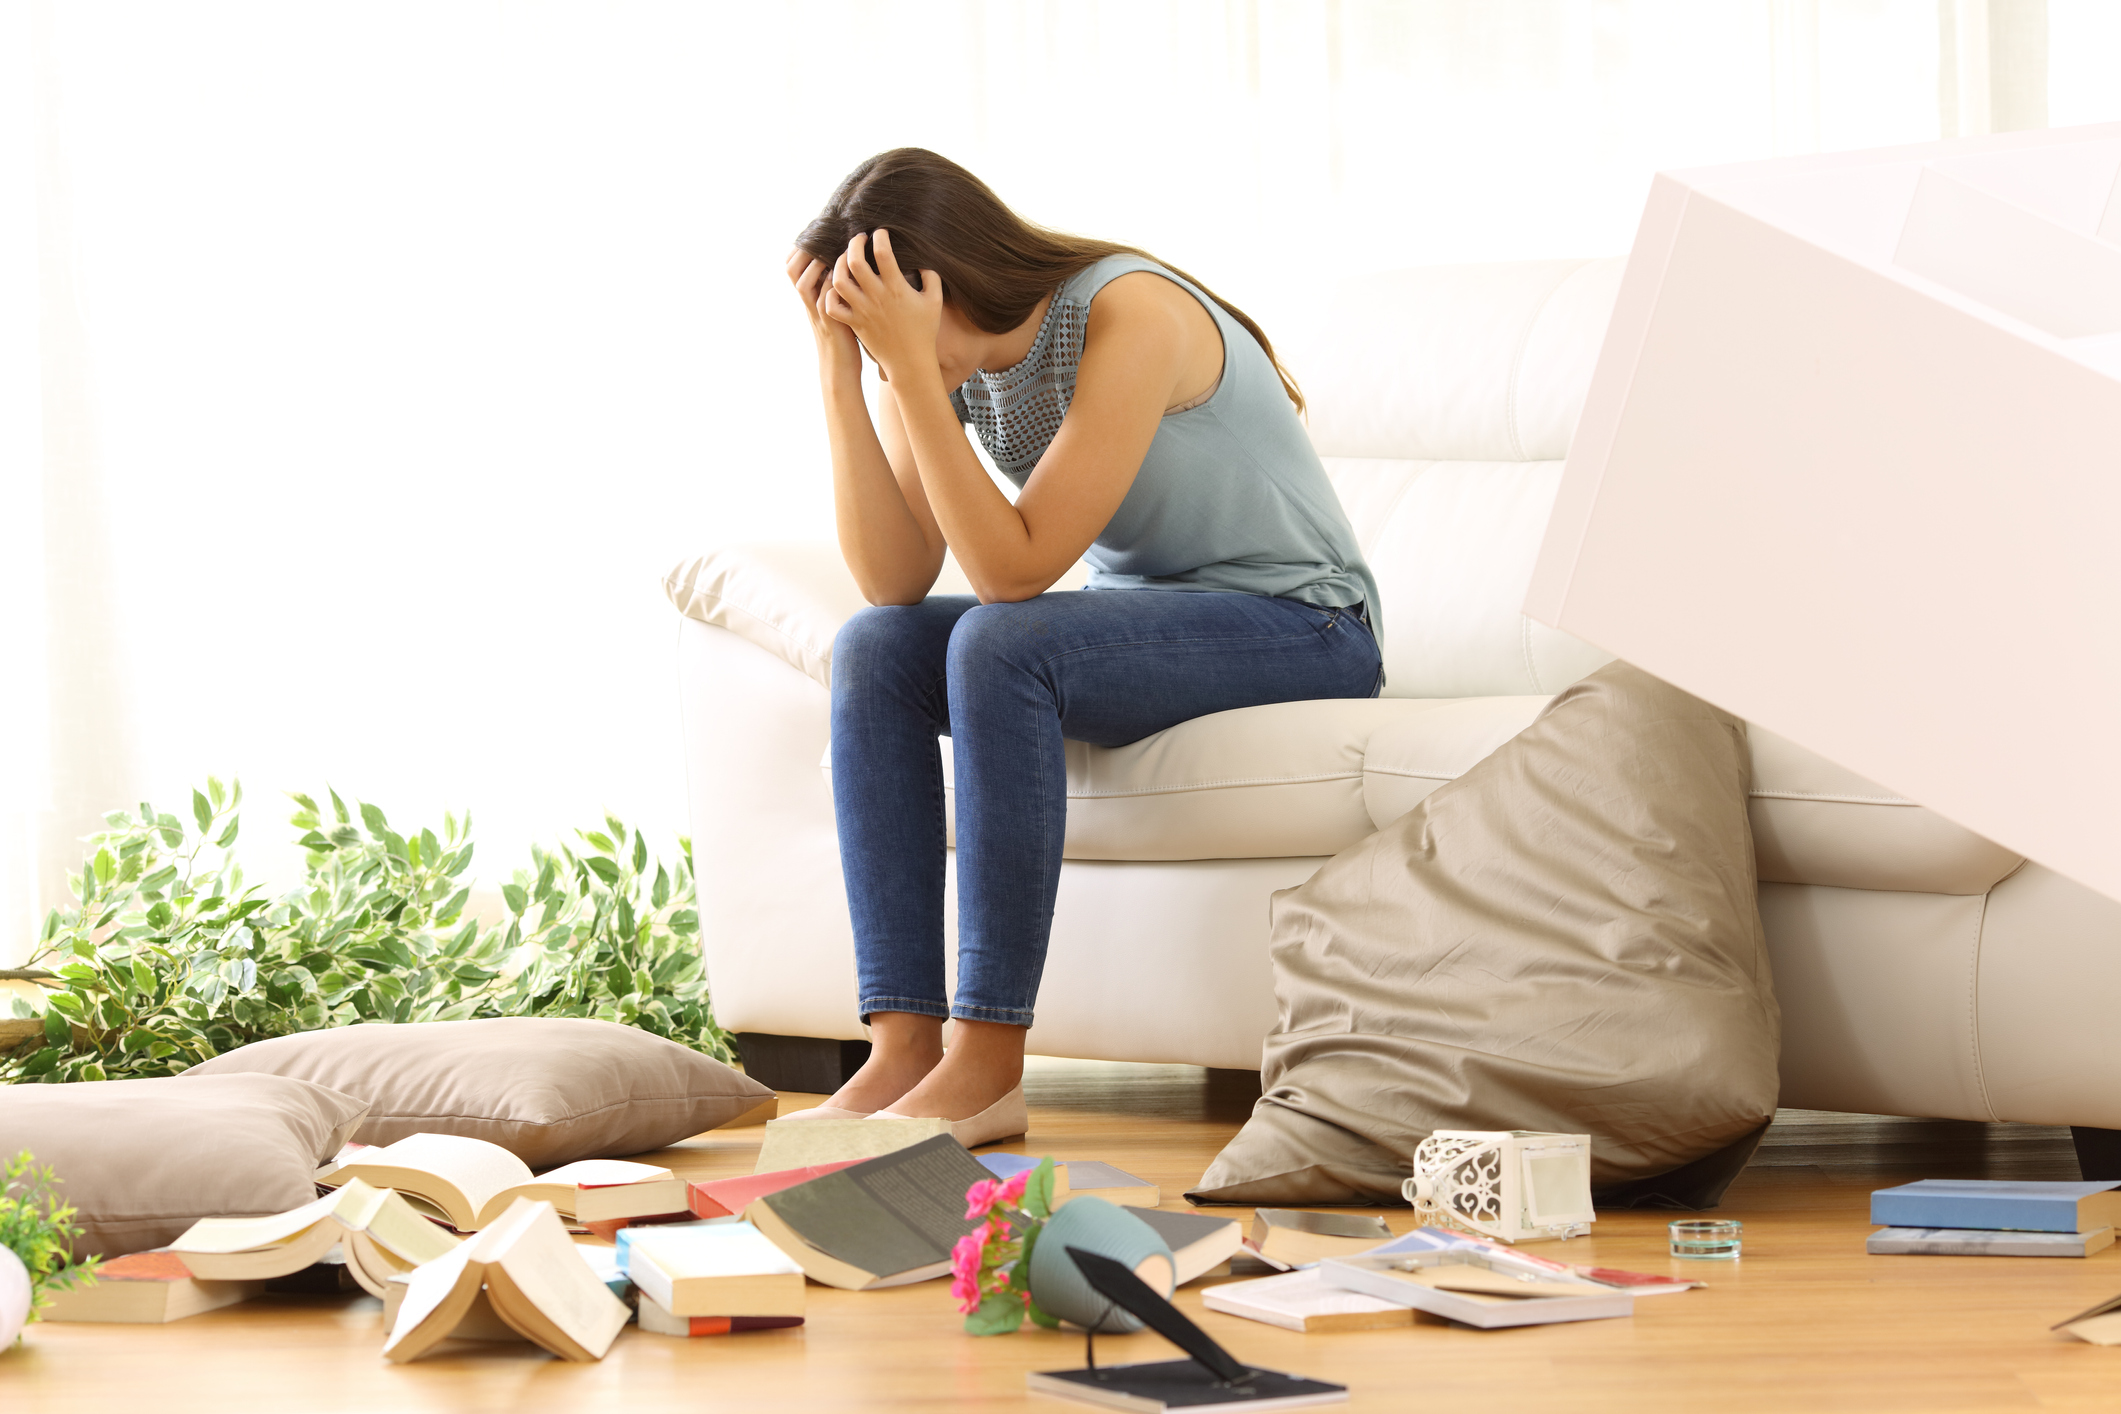 Girl looking distressed at the mess in her apartment